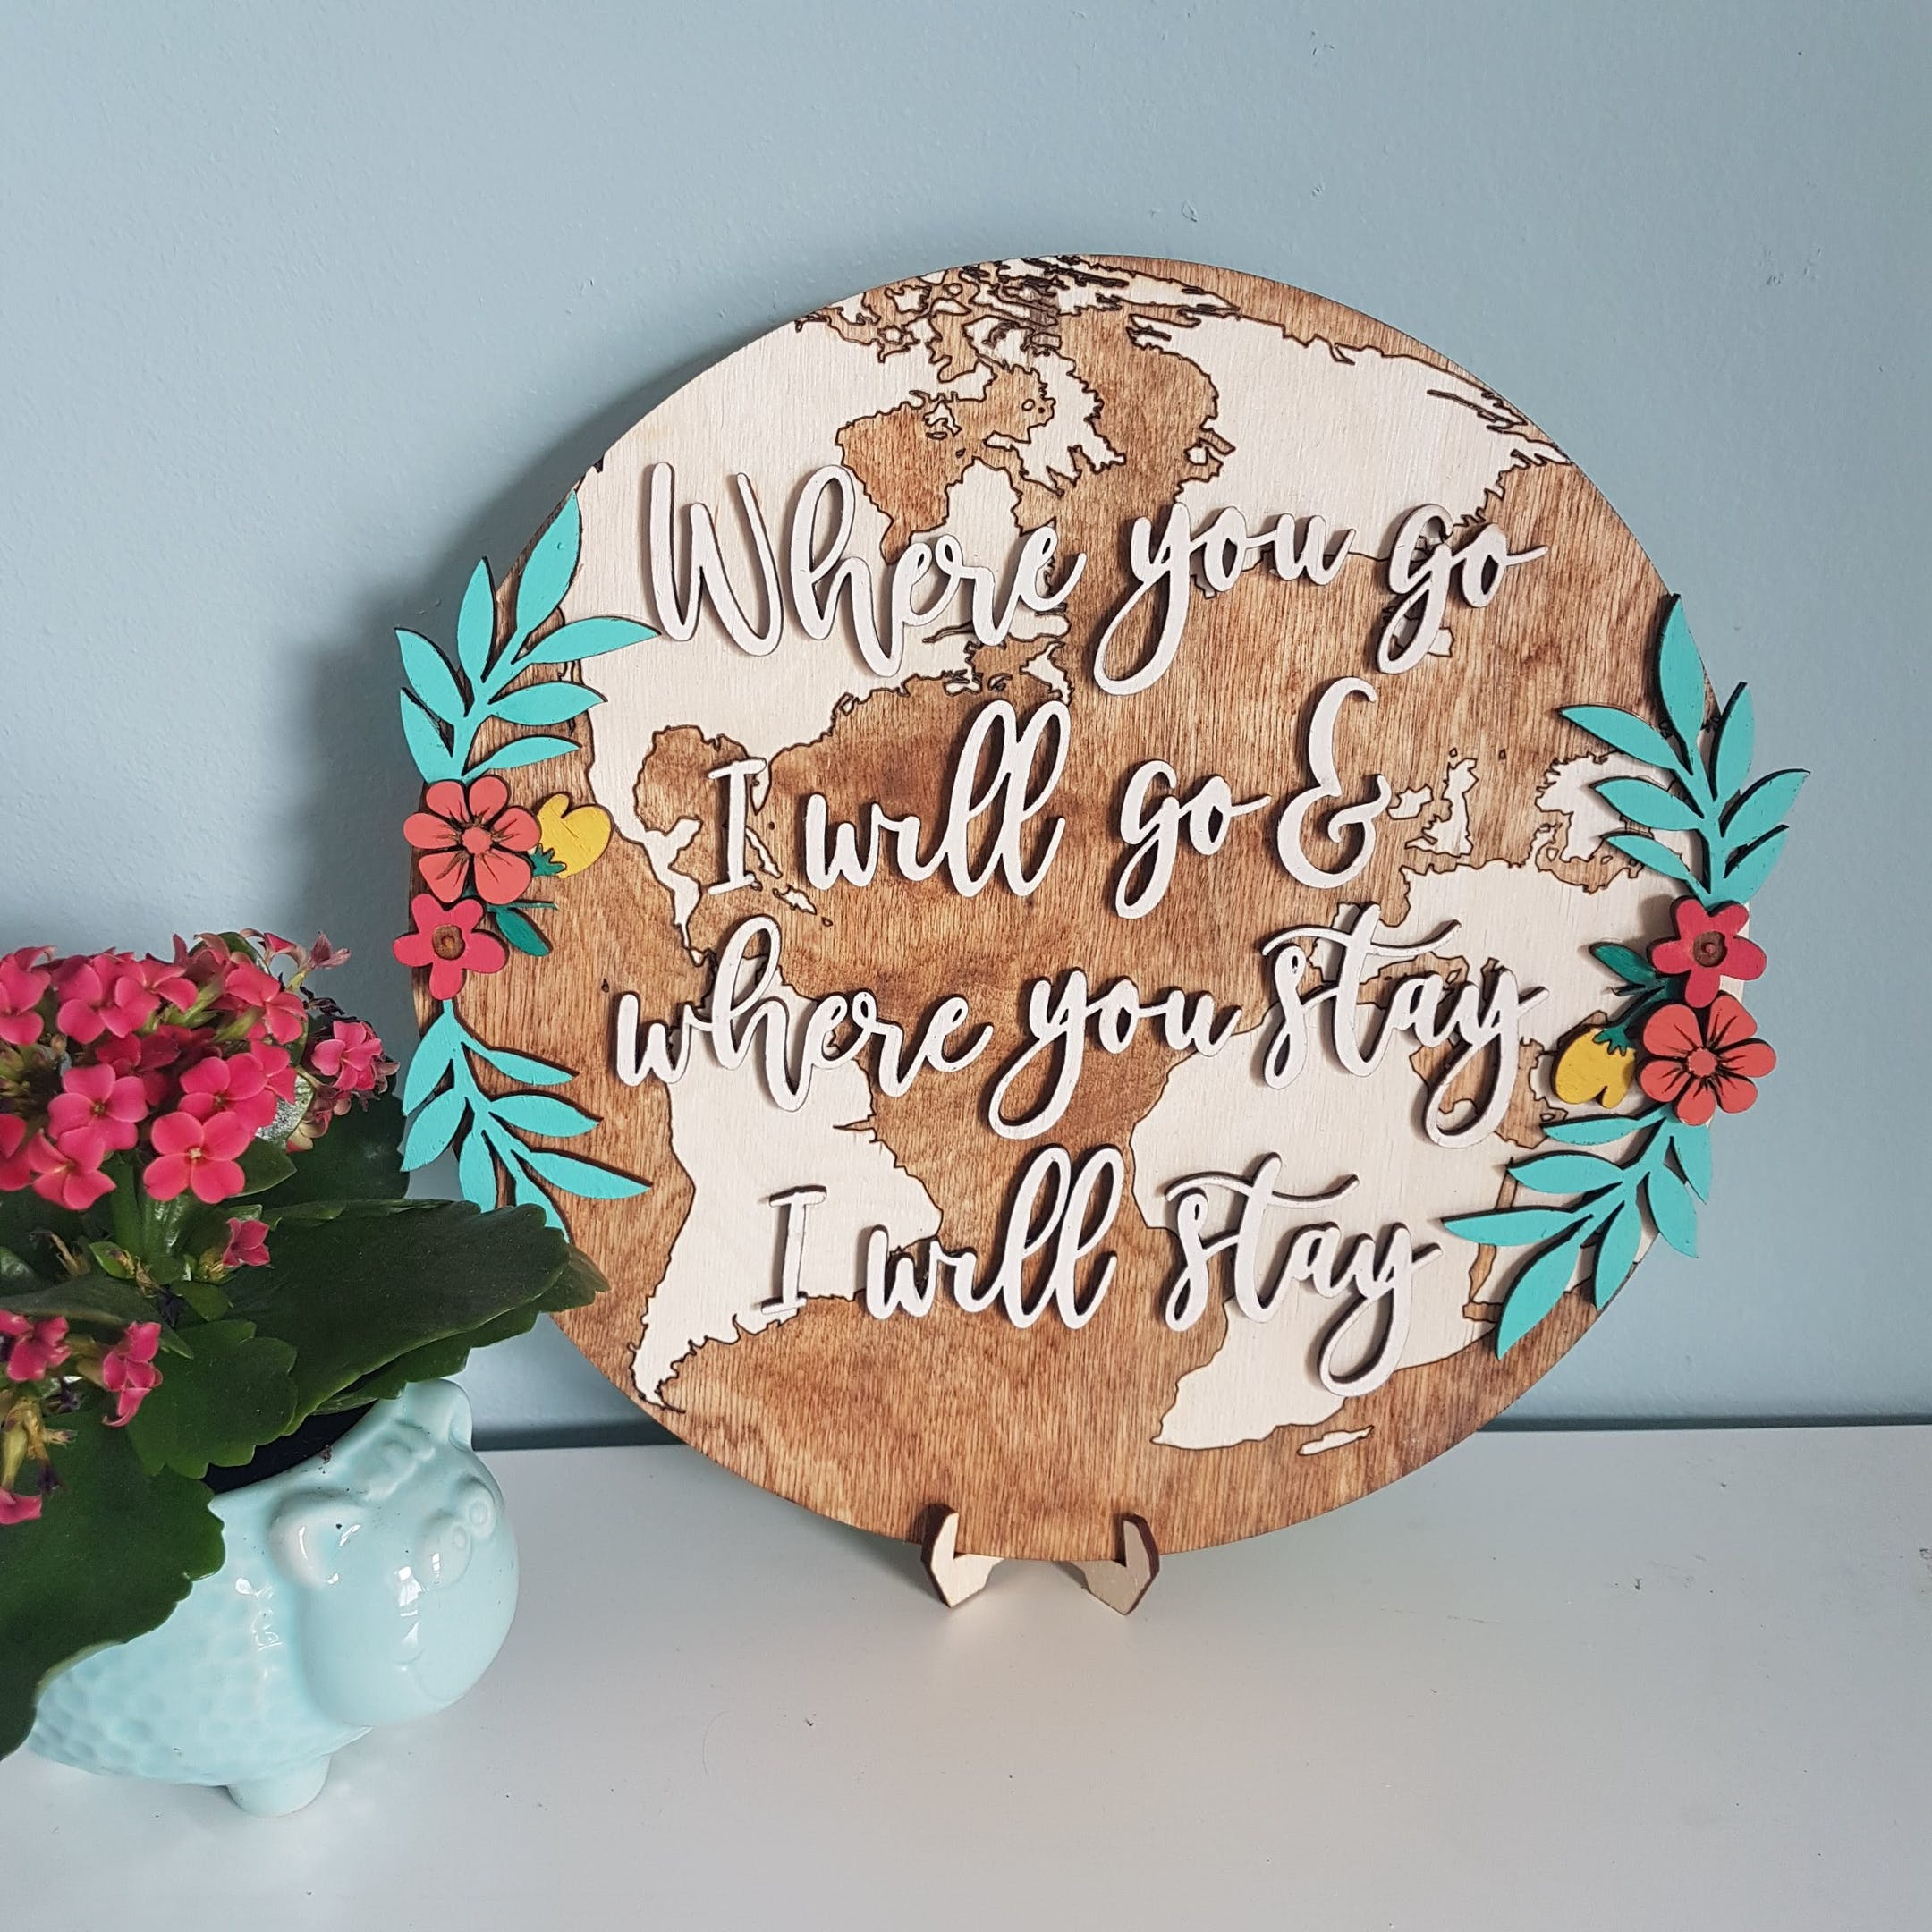 Travel World Wooden Home Decor Sign - Ruth 1:16 - Birch and Tides